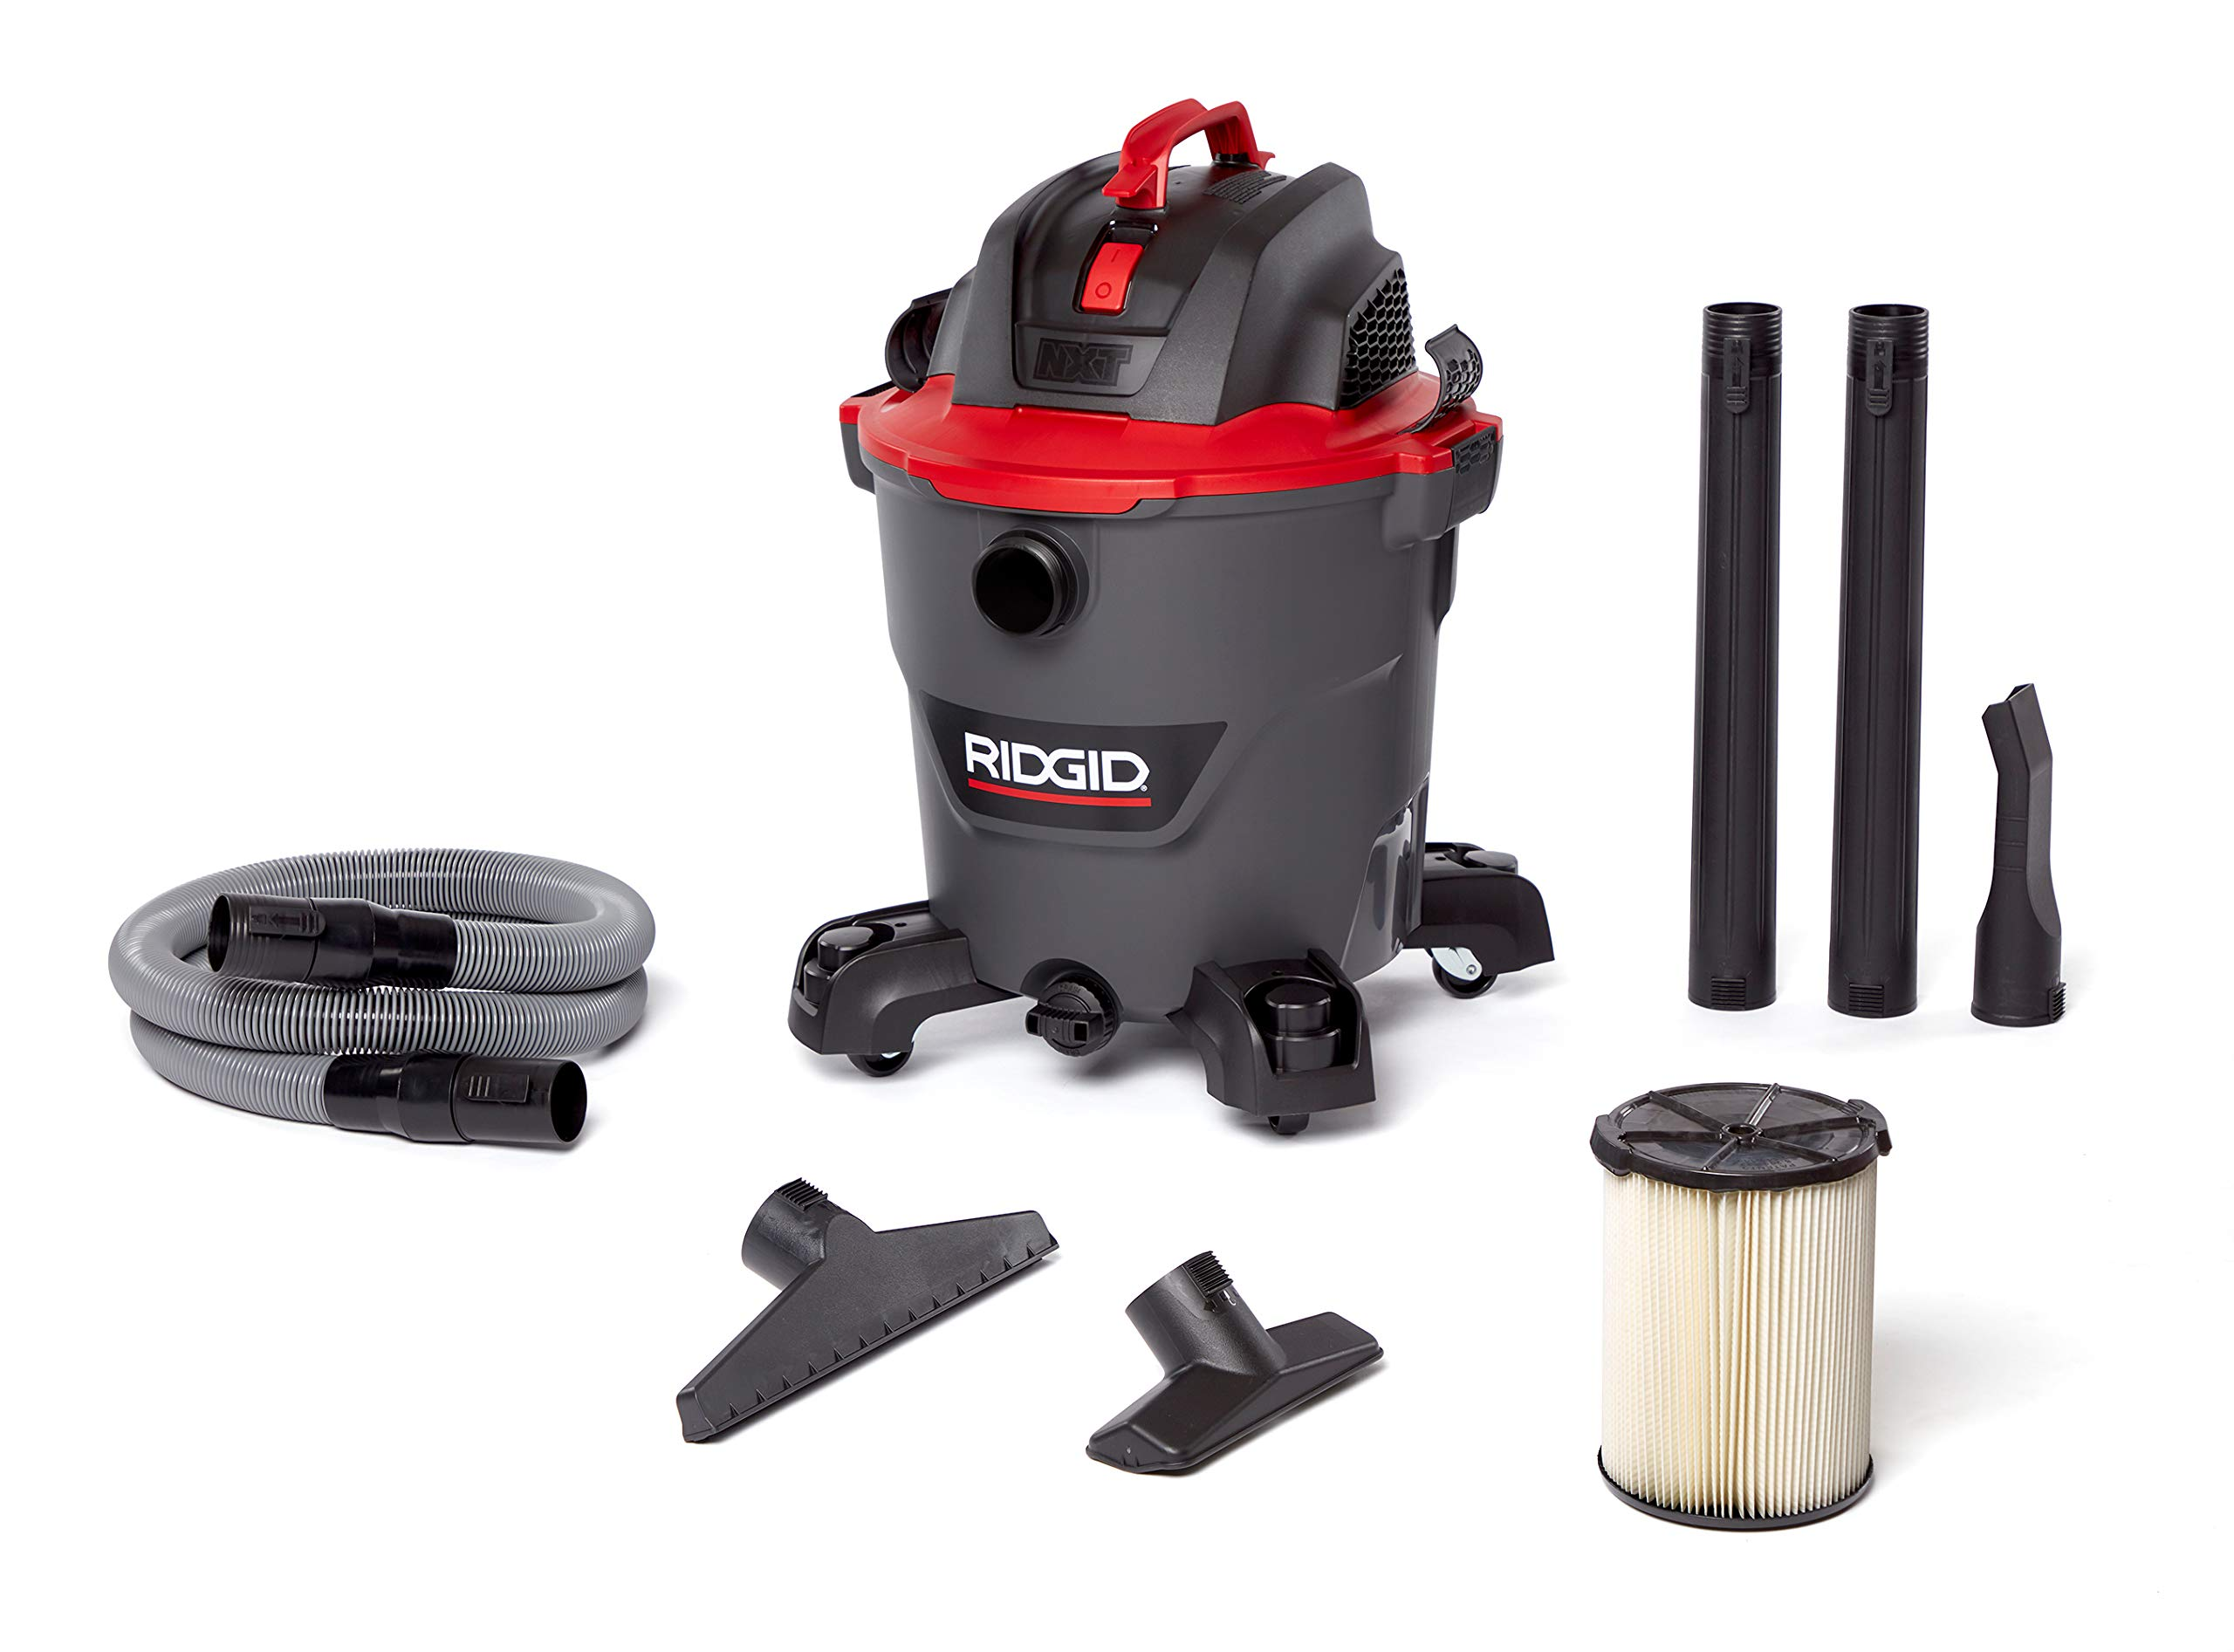 Ridgid 62703 Red 12 gallon RT1200 Wet/Dry Vacuum by Ridgid